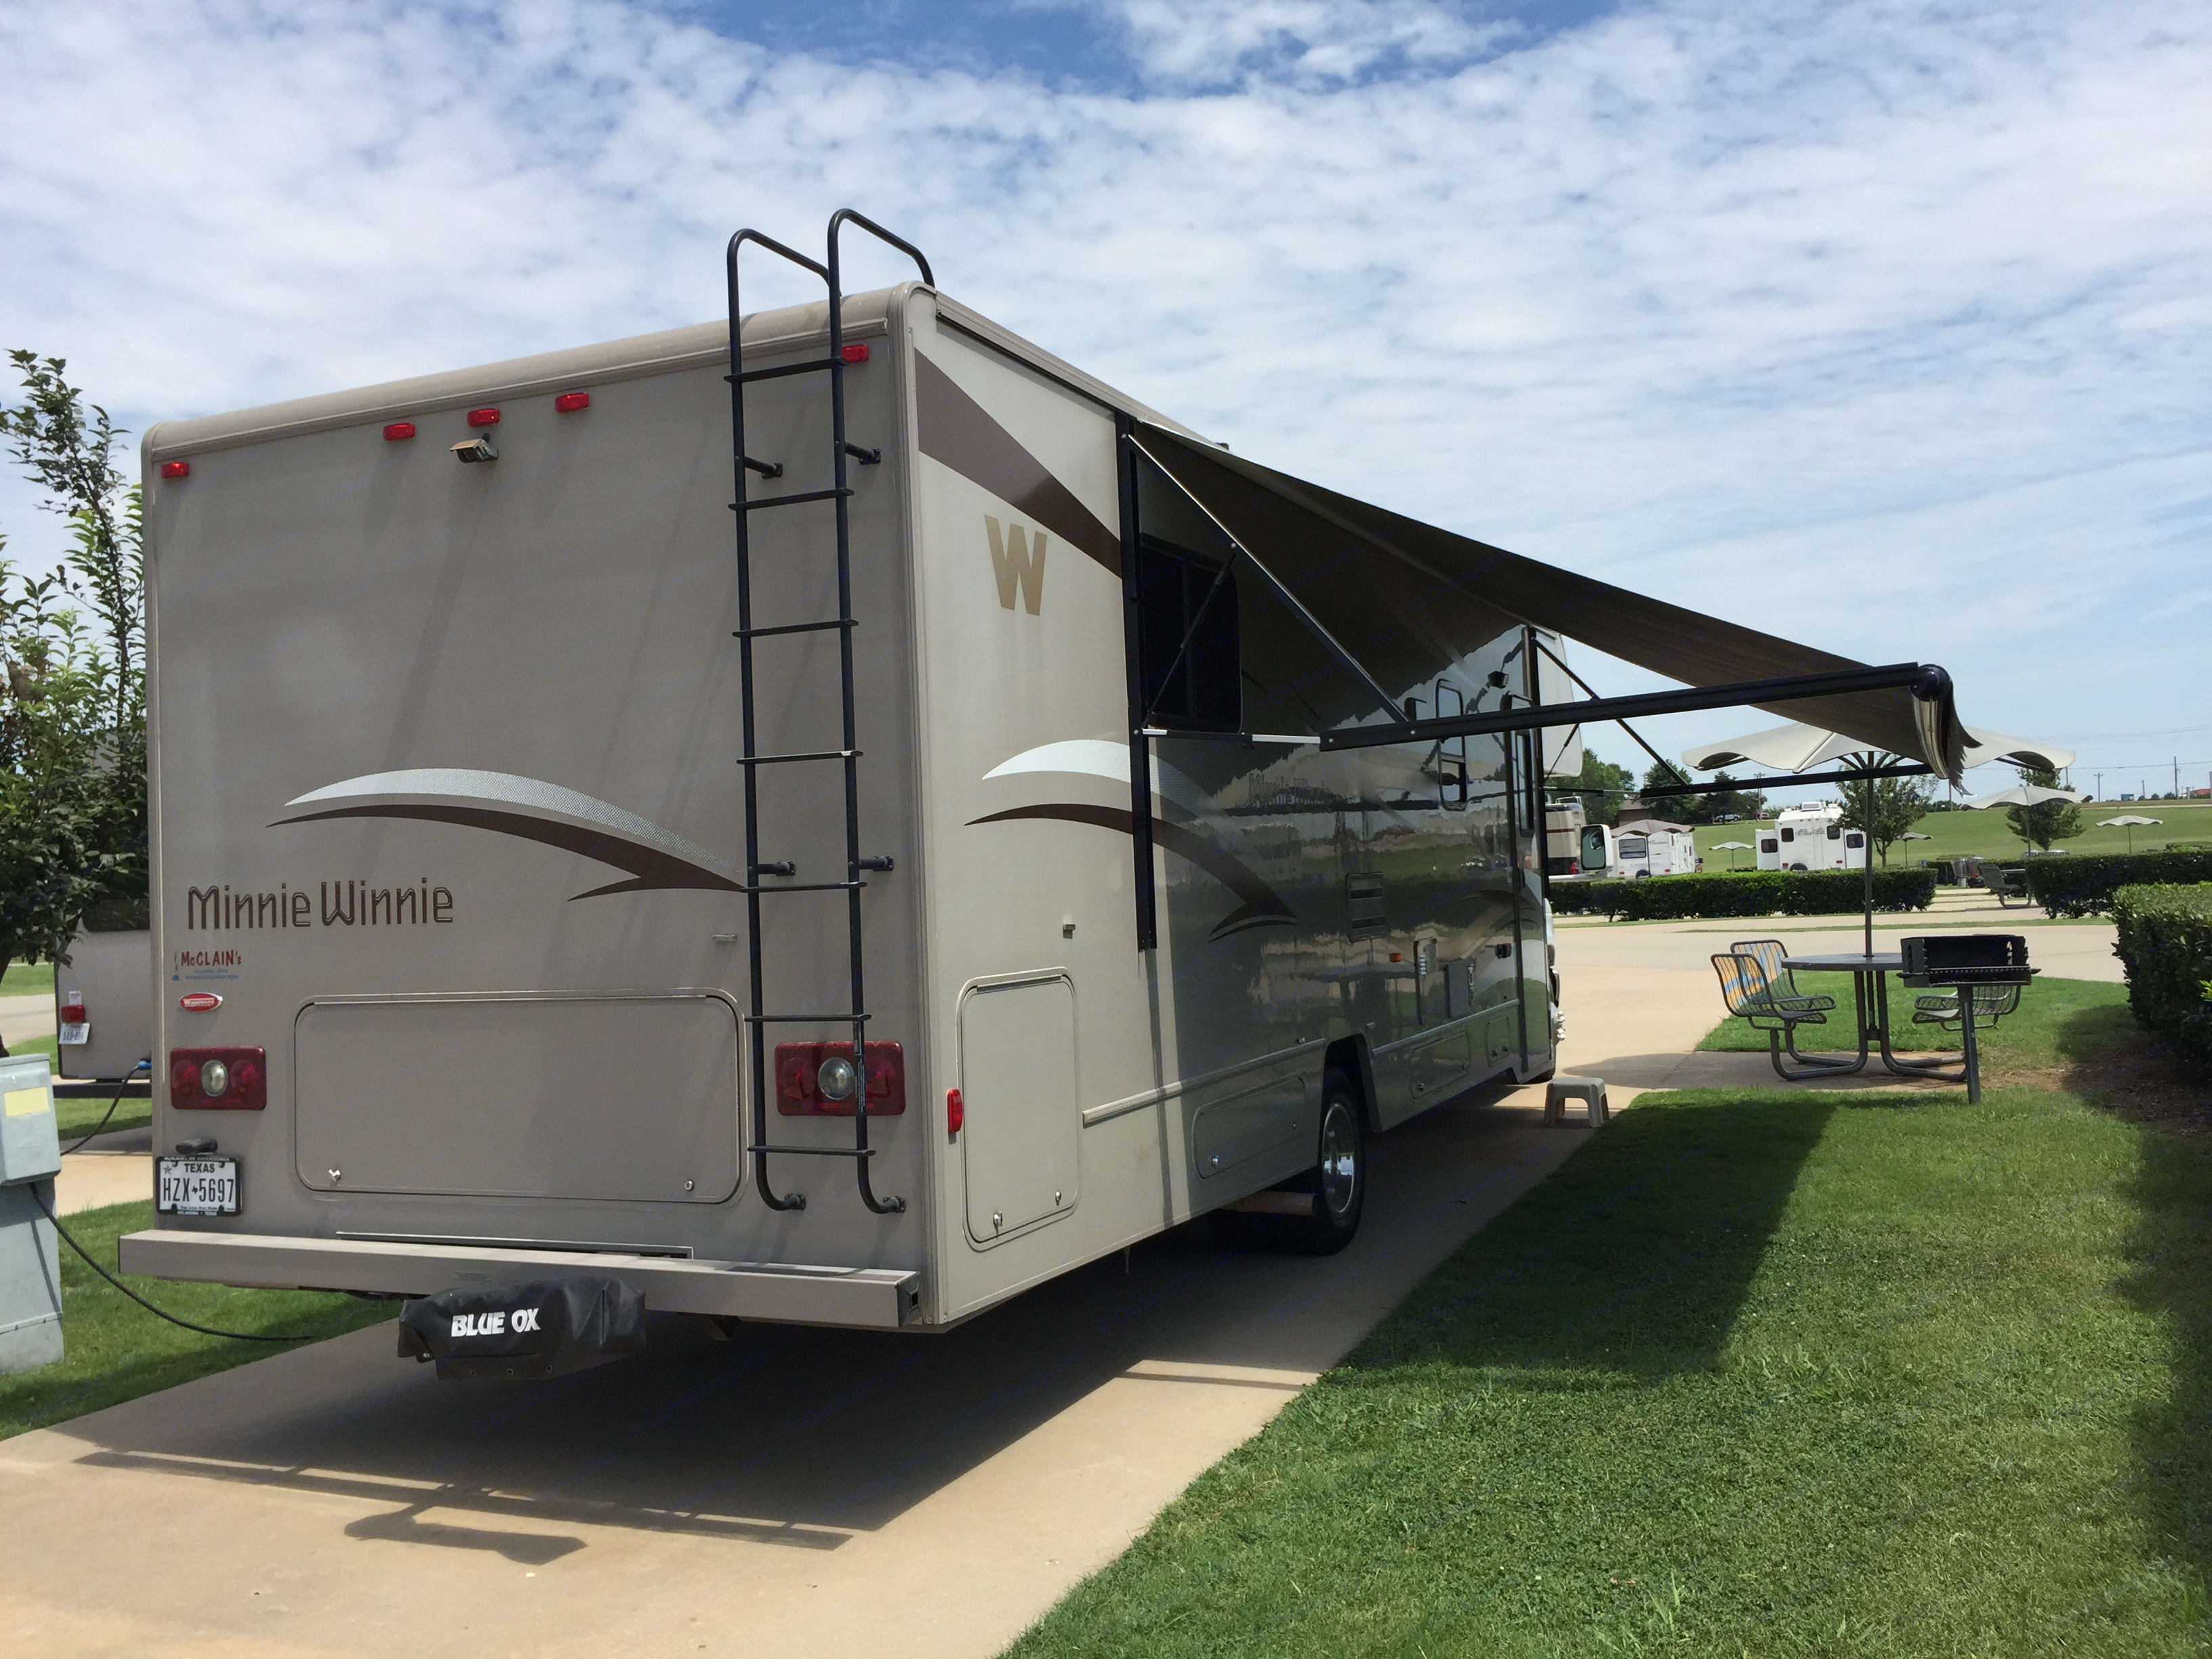 power awning, one slide out on left side.. Winnebago Minnie Winnie 2014